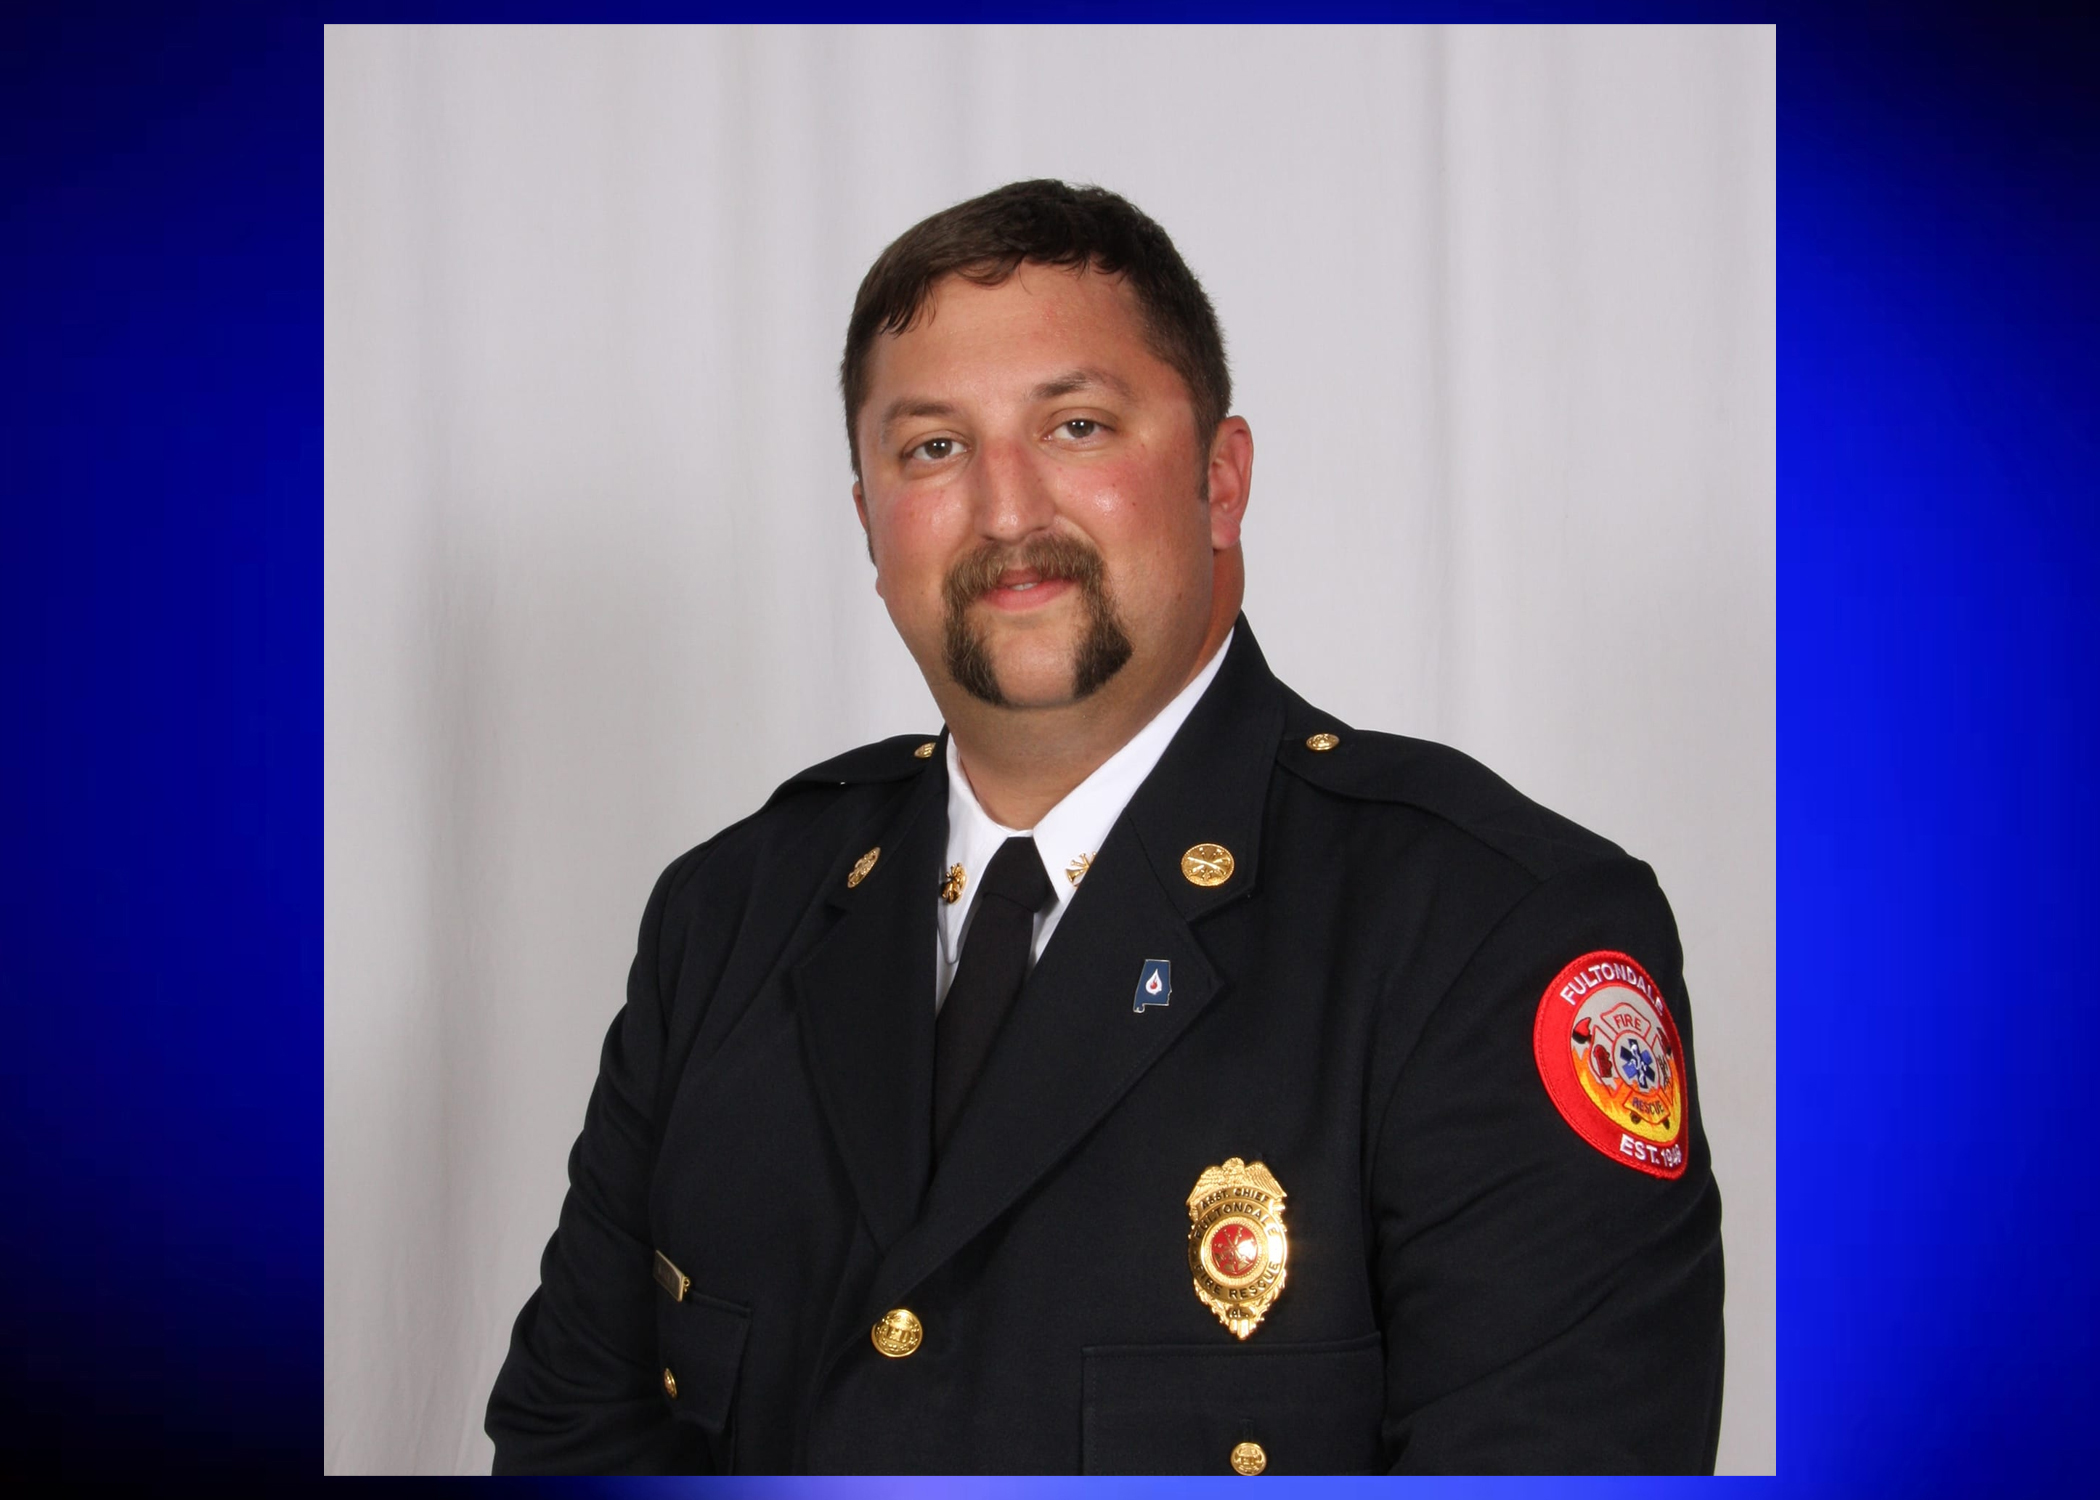 From Chief to Chef: Fultondale Fire Chief to appear on Food Network's cooking competition show